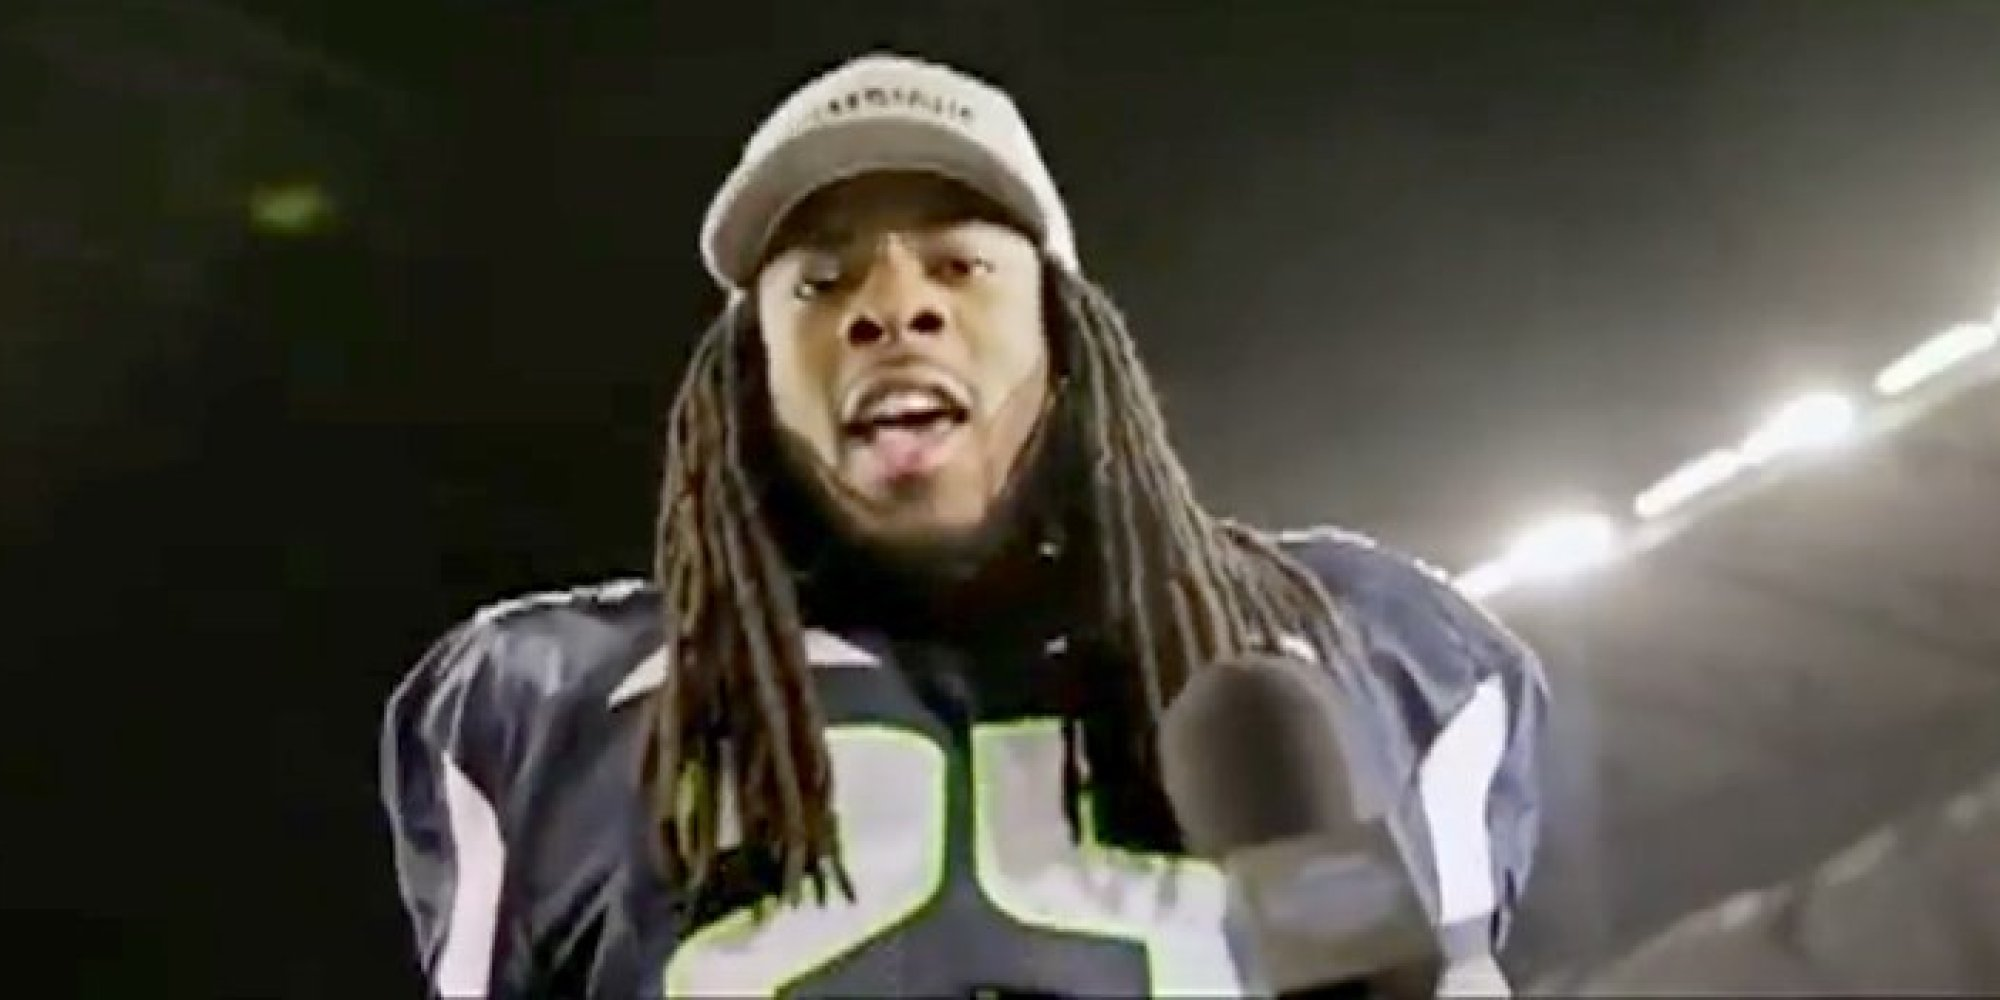 WATCH: Richard Sherman Sounds Off ... For A Good Cause